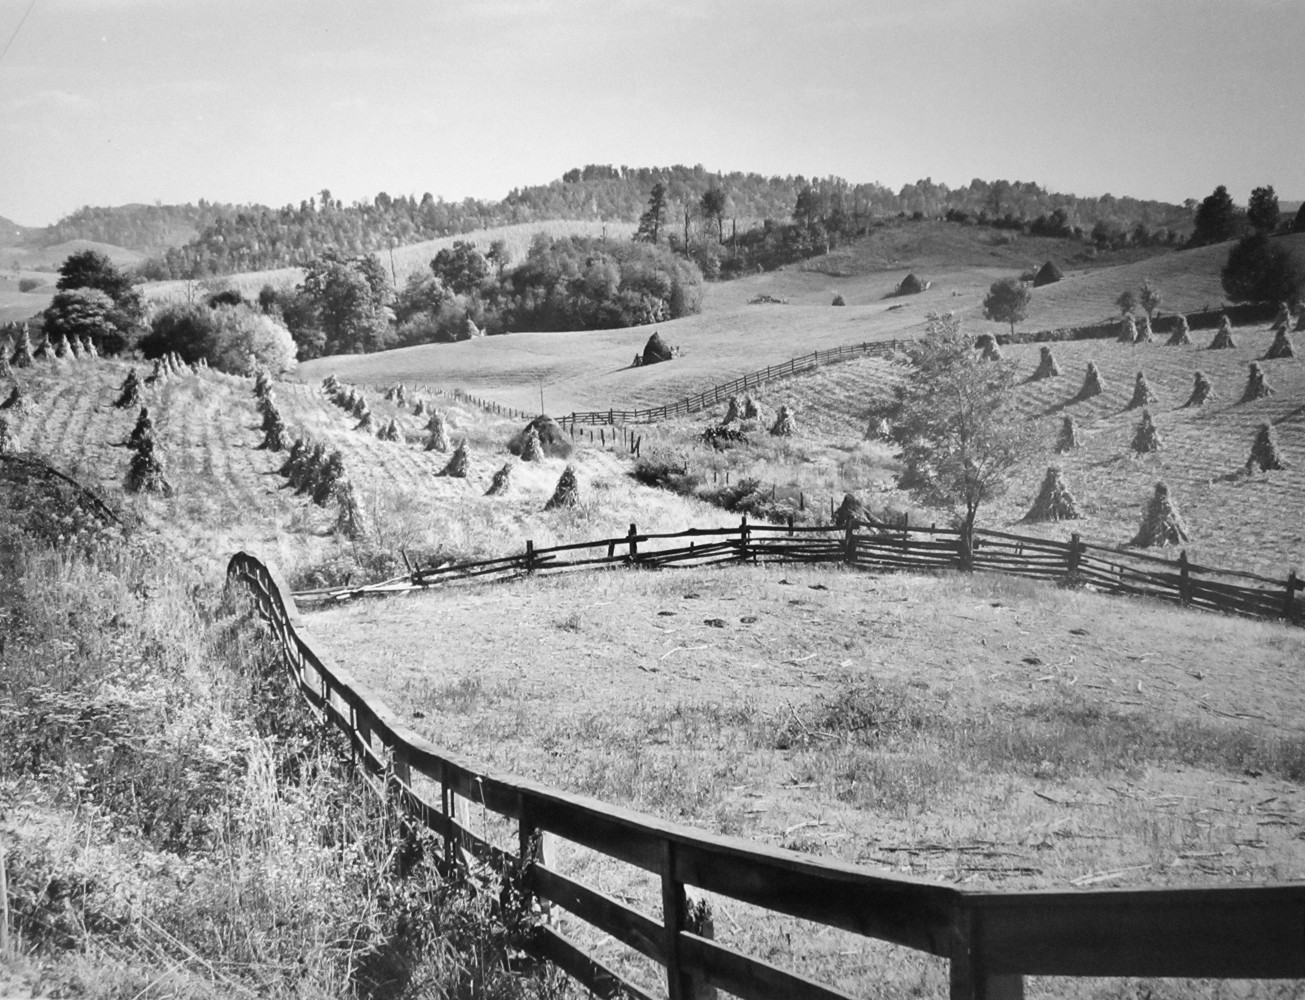 Marion Post Wolcott, Board and split rail fences around fields of shocked corn. Near Marion, Virginia, 1940, gelatin silver print, signed, 16 x 20 inches